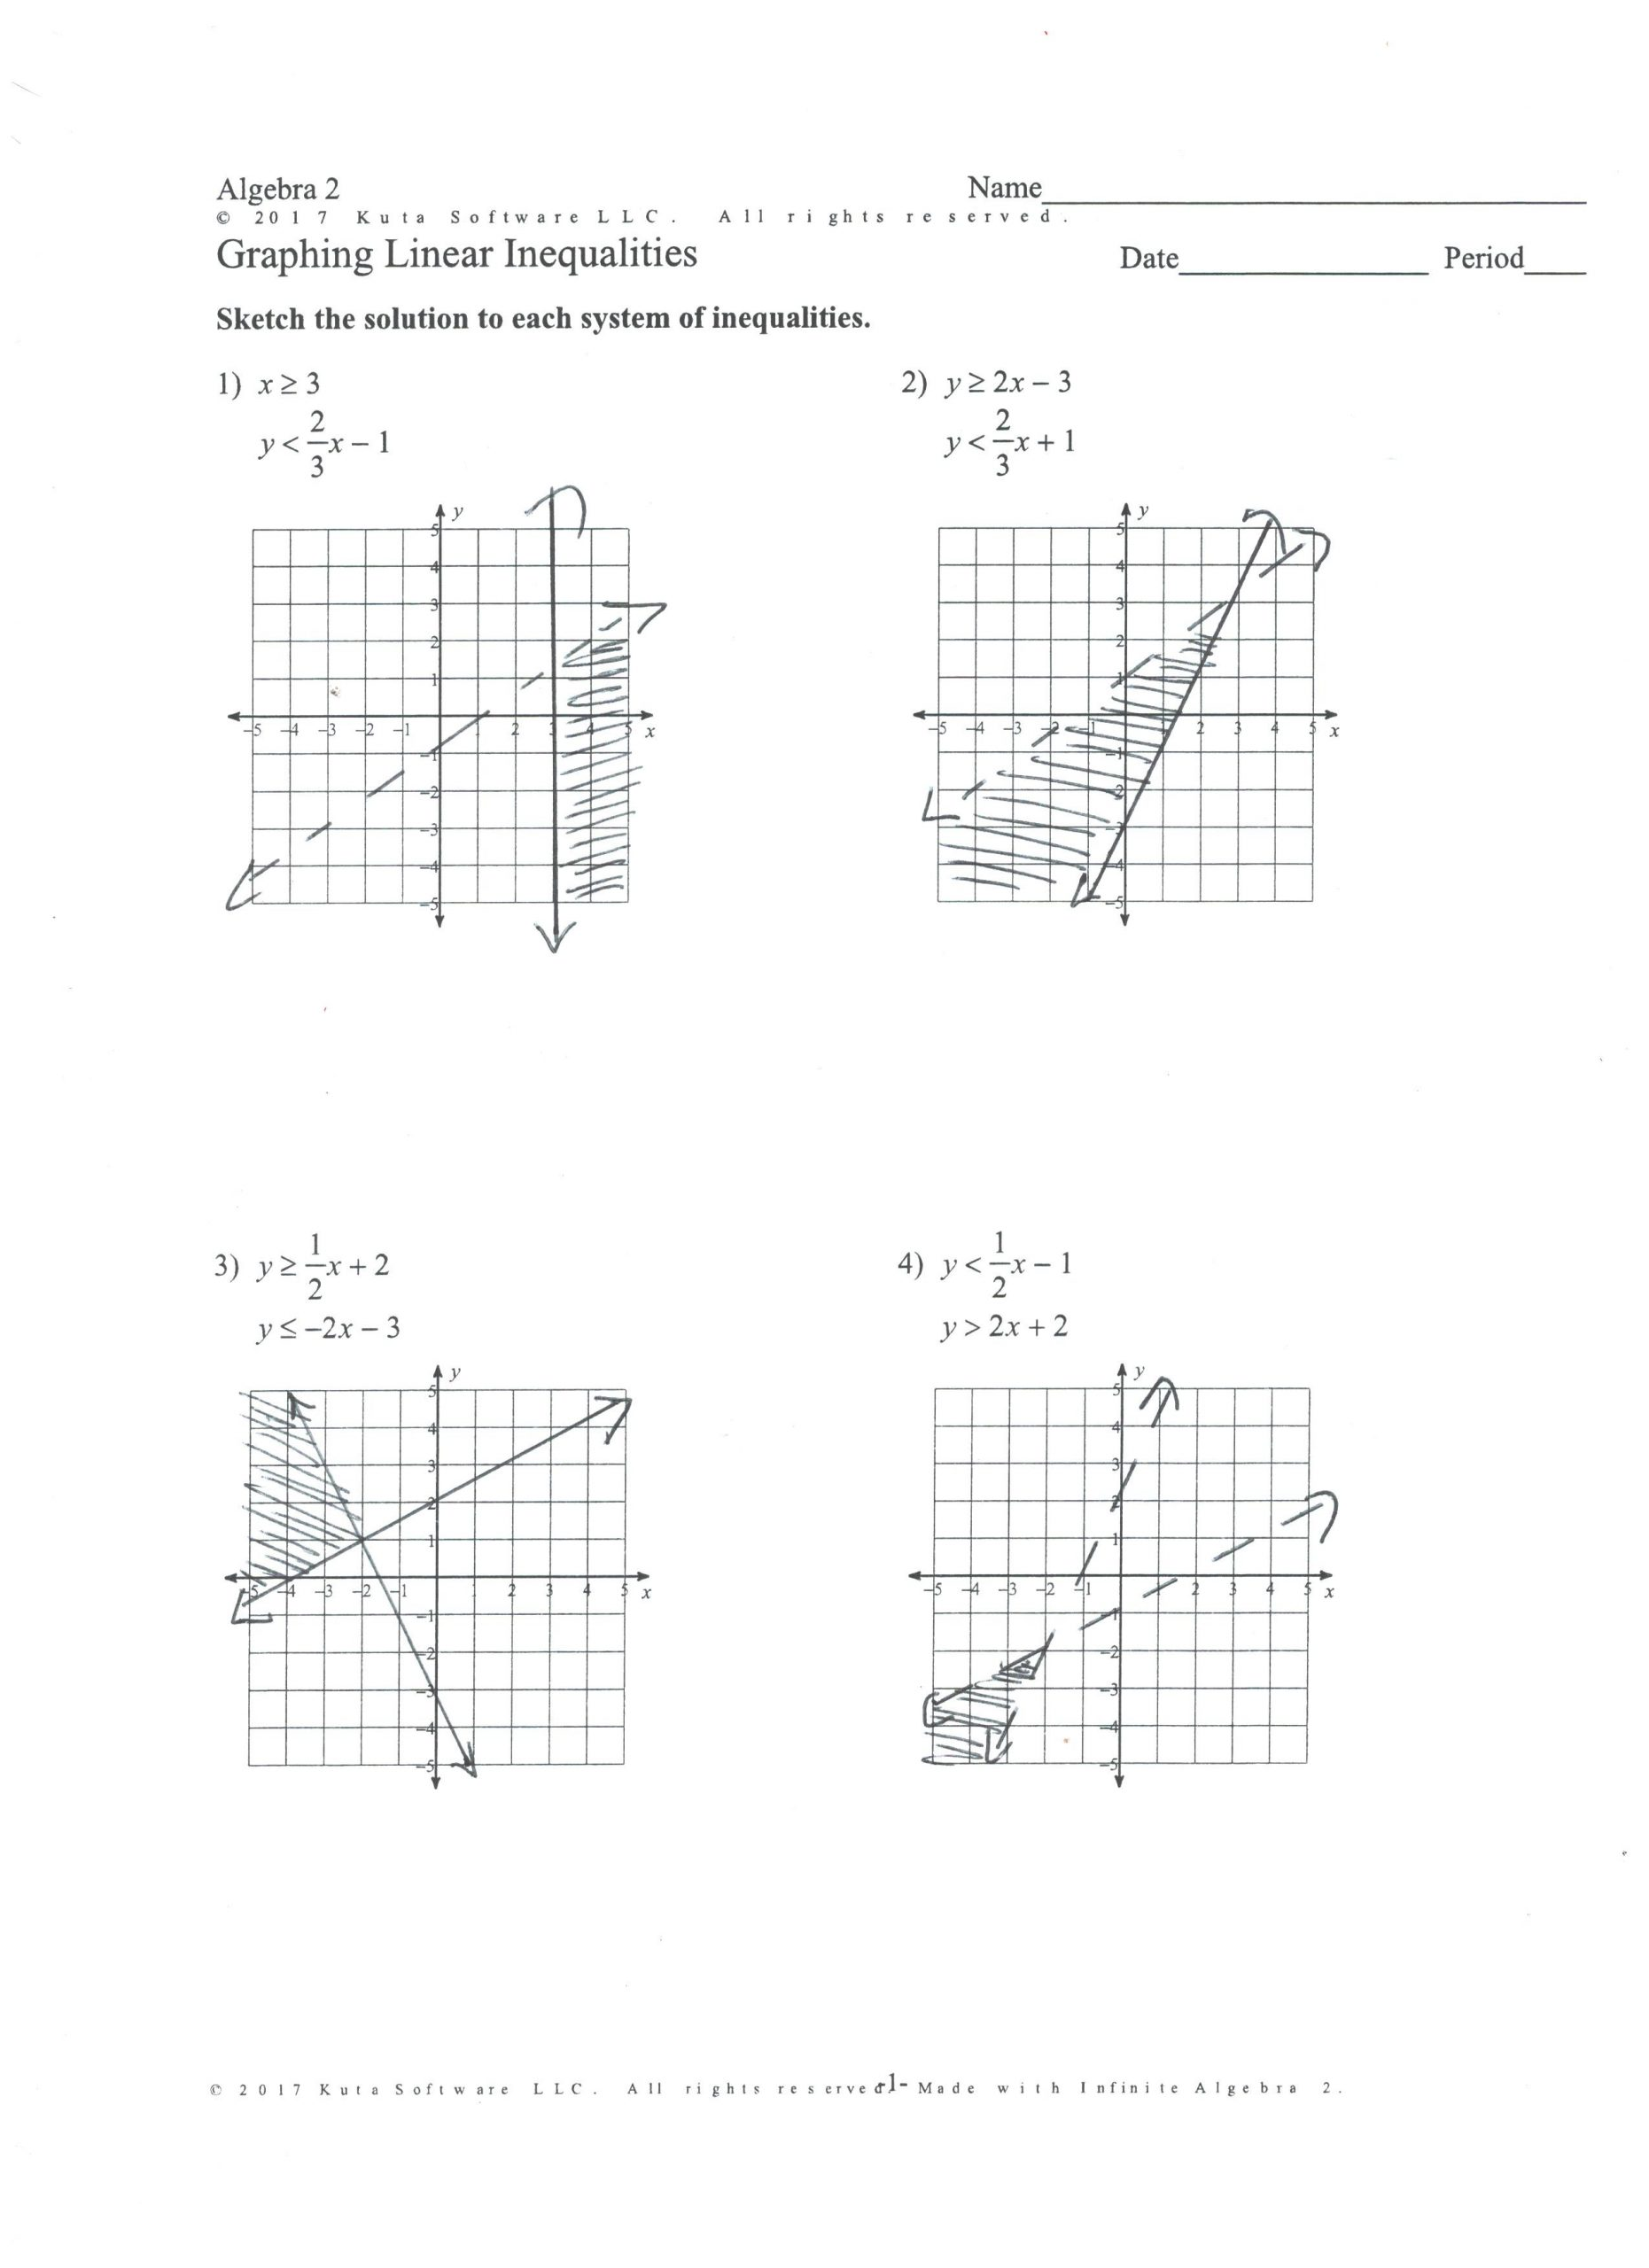 Graphing Linear Inequalities Worksheet Answers Algebra 2 Chapter 3 Systems Linear Equations Inequalities